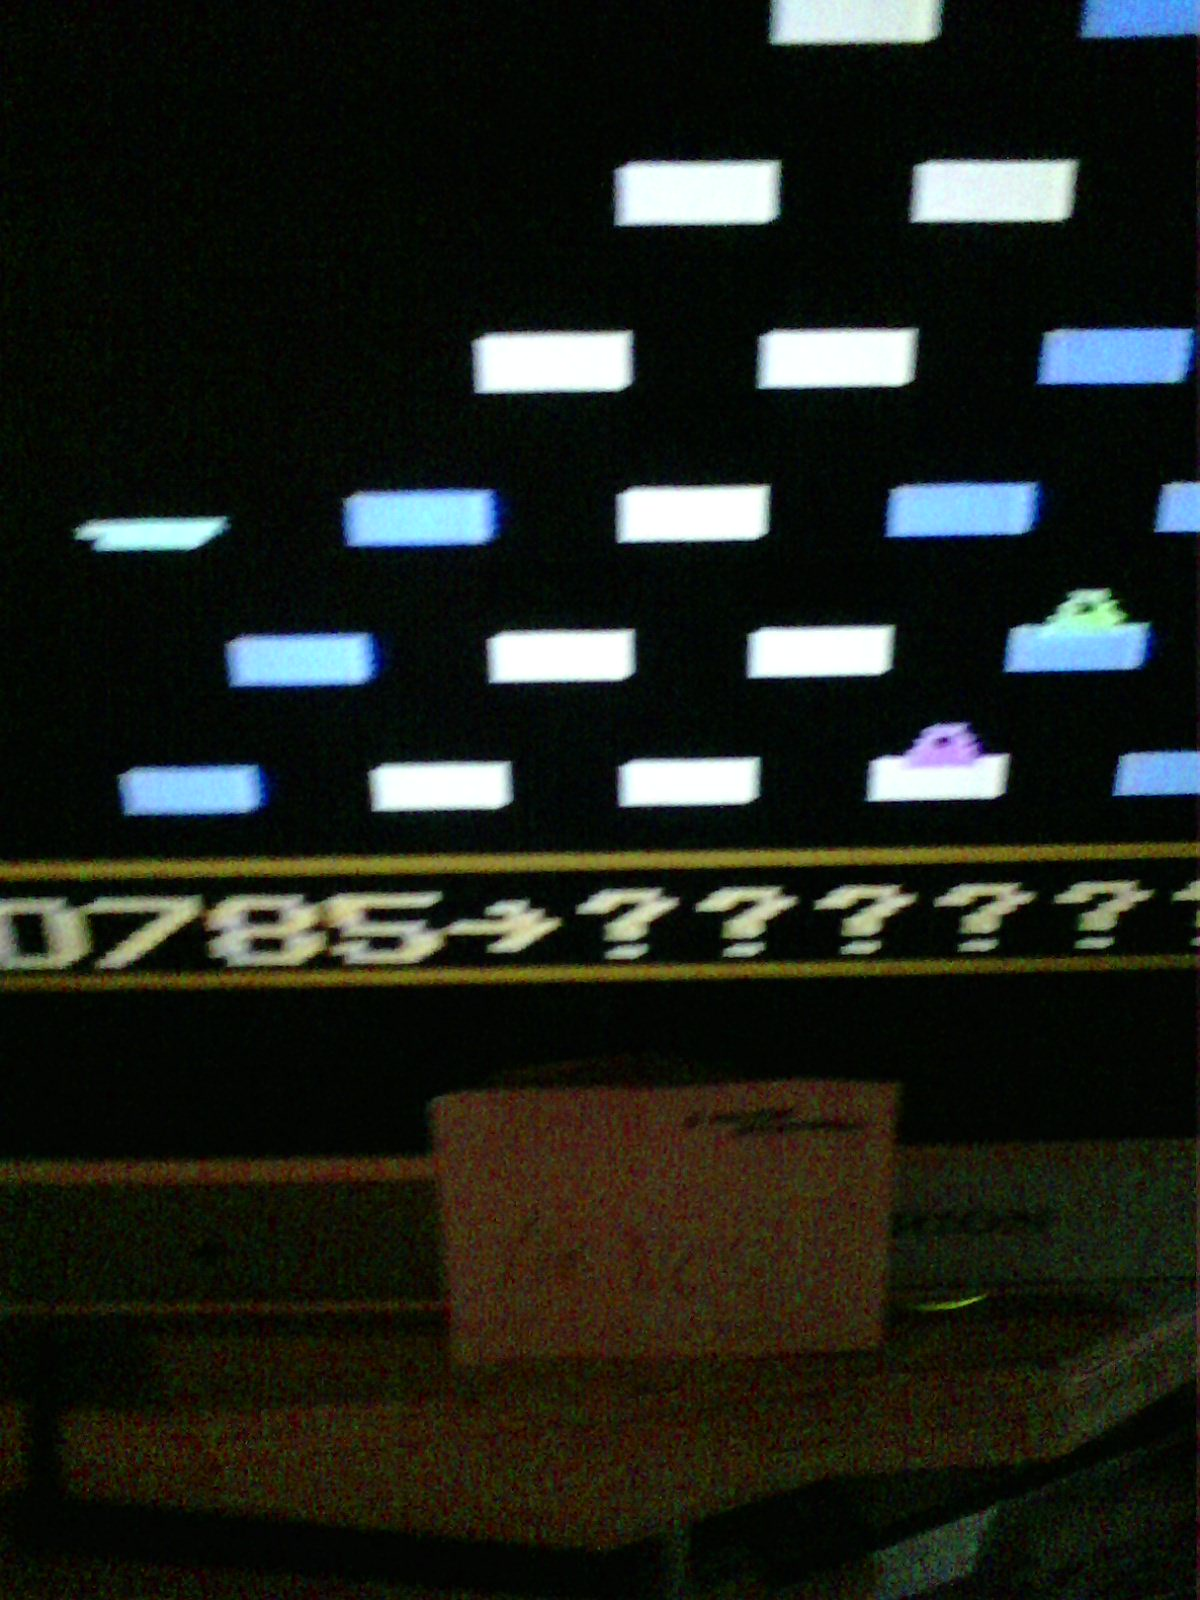 MisterVCS: Q*bert (Odyssey 2 / Videopac) 785 points on 2020-08-13 14:21:31